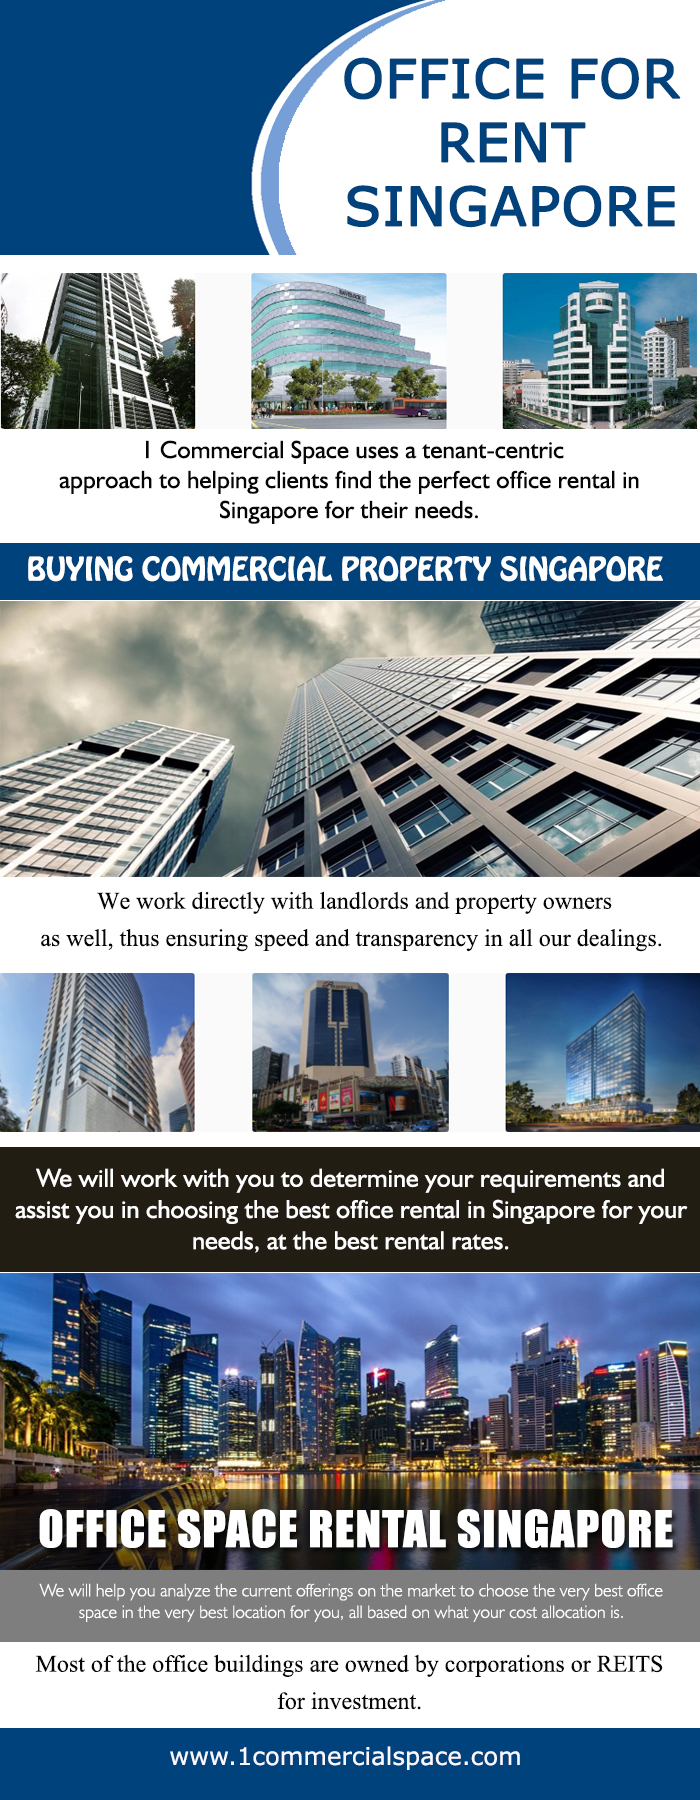 Far East Finance Building Rental